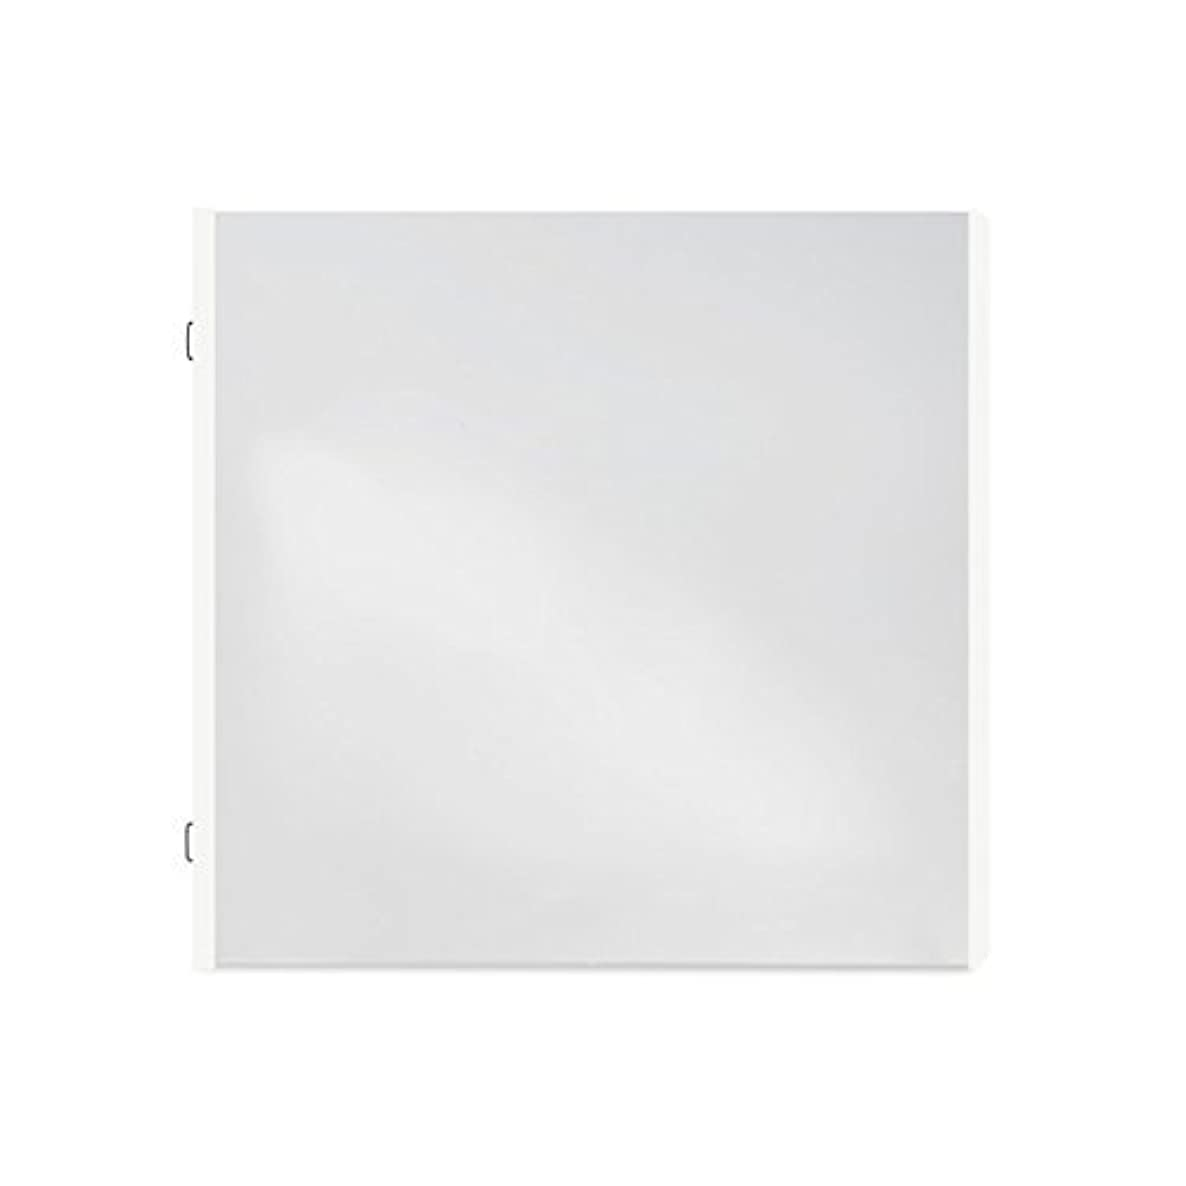 12x12 Single-Pocket Pages (12/pk)